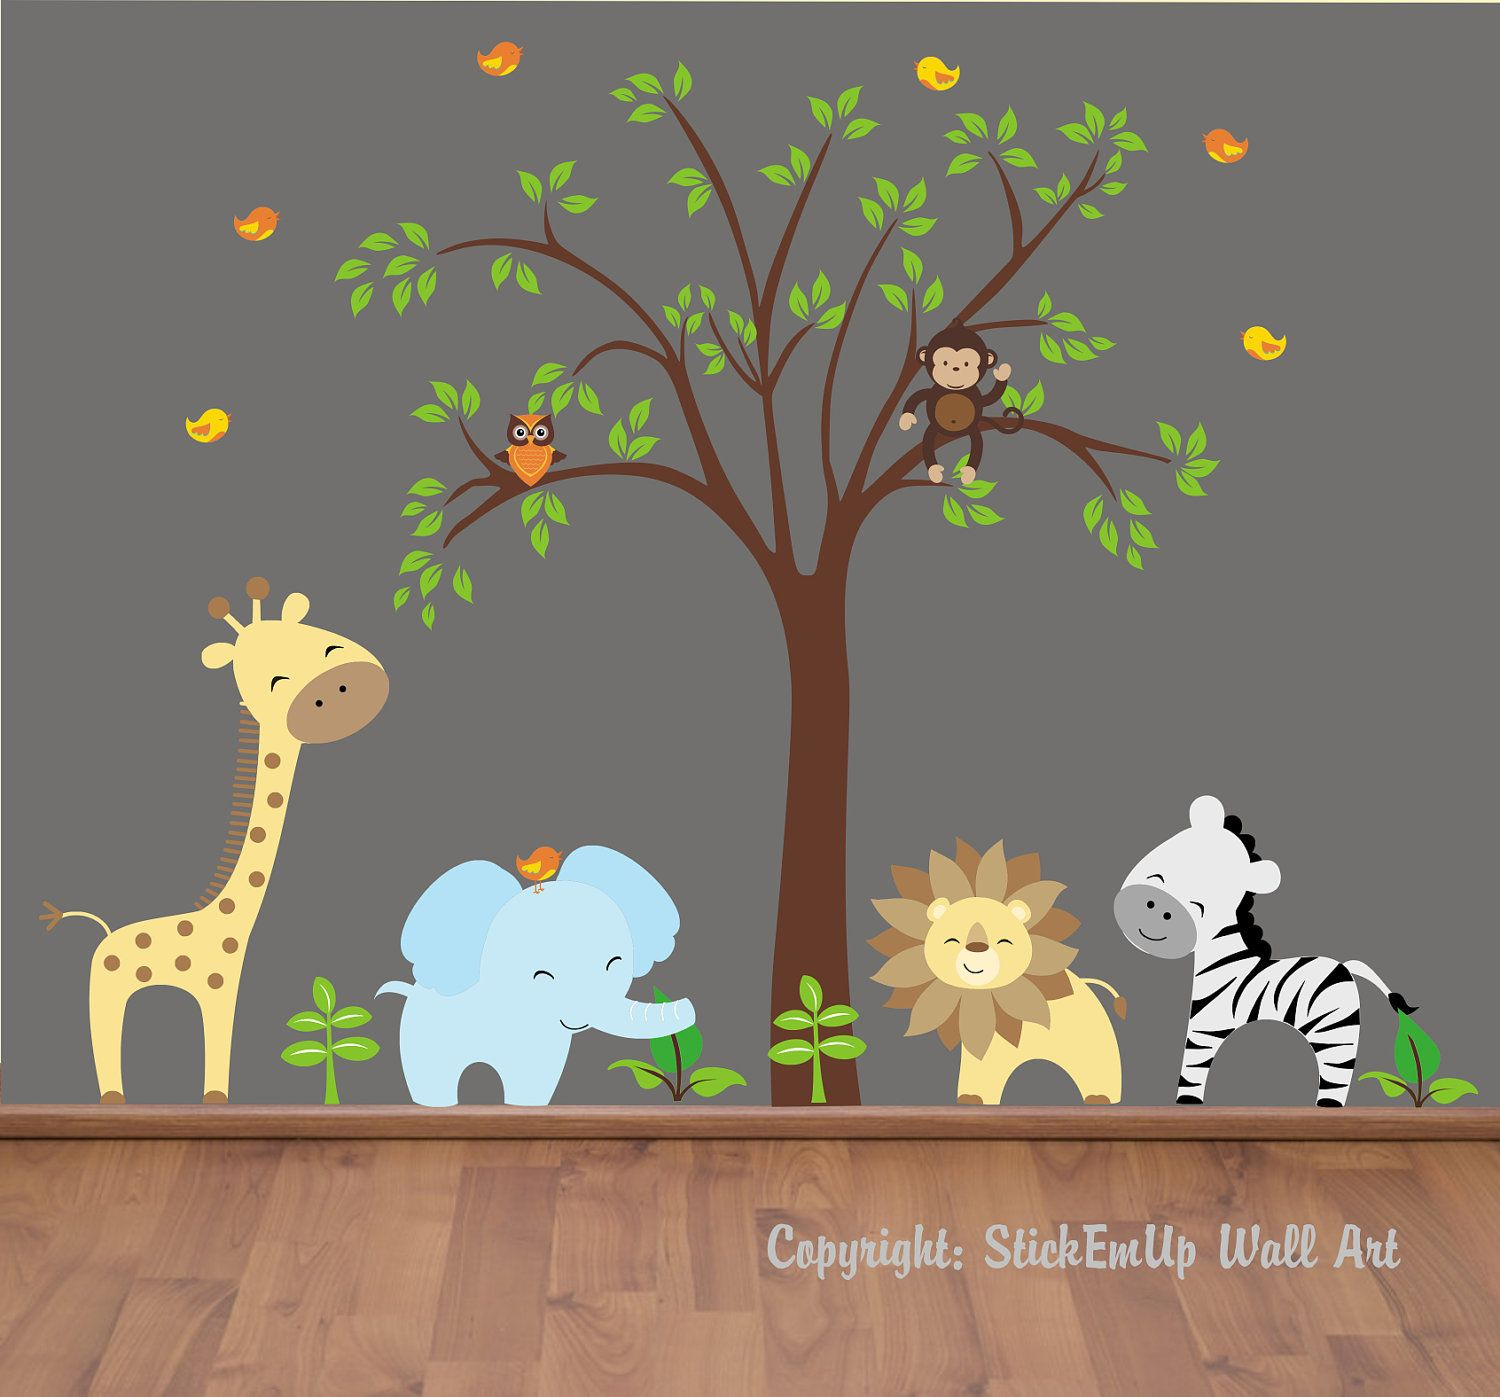 Baby wall decals 131 nursery wall decals jungle wall decals baby wall decals 131 nursery wall decals jungle wall decals 16995 amipublicfo Choice Image